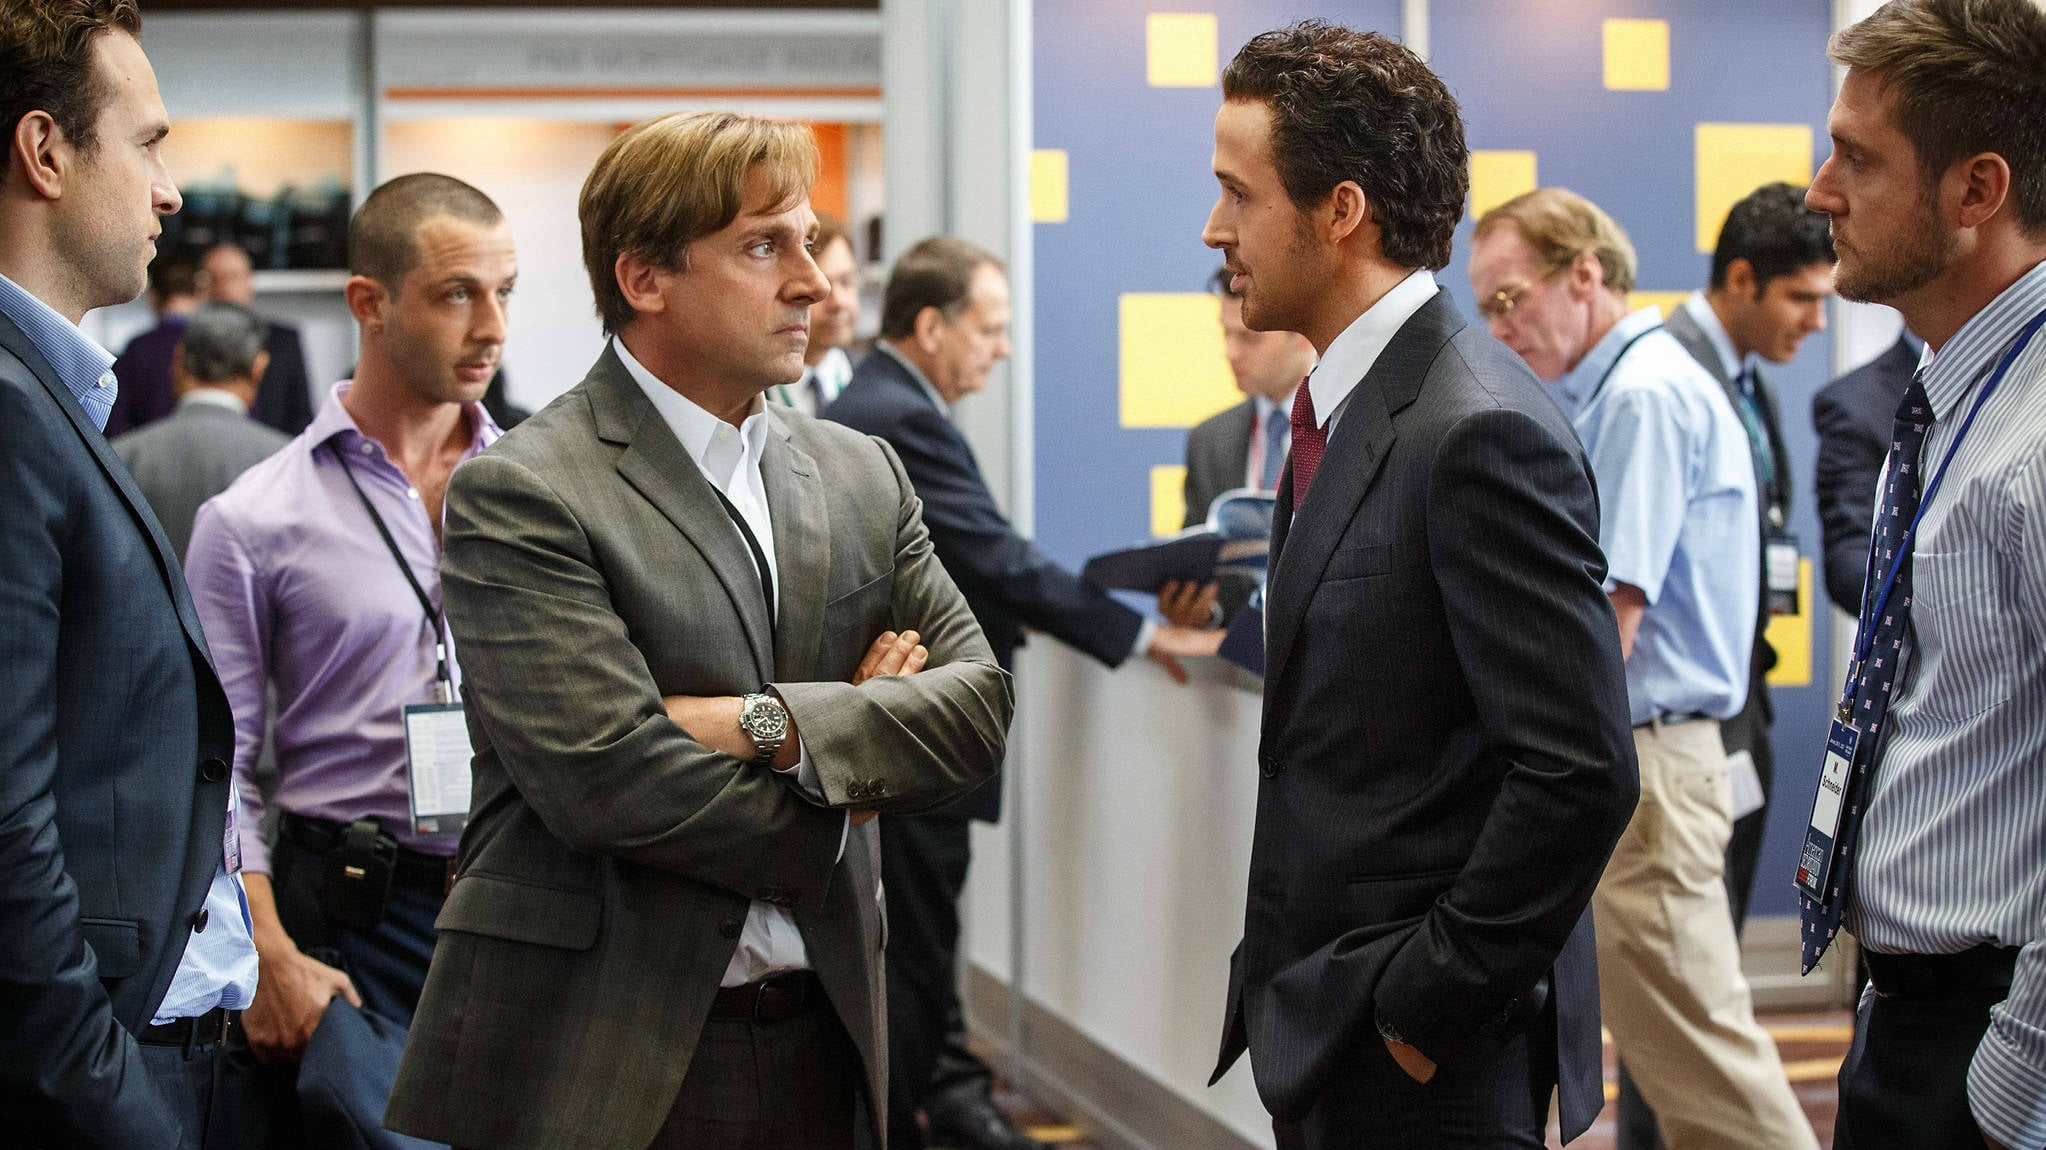 The big short - oscars 2016